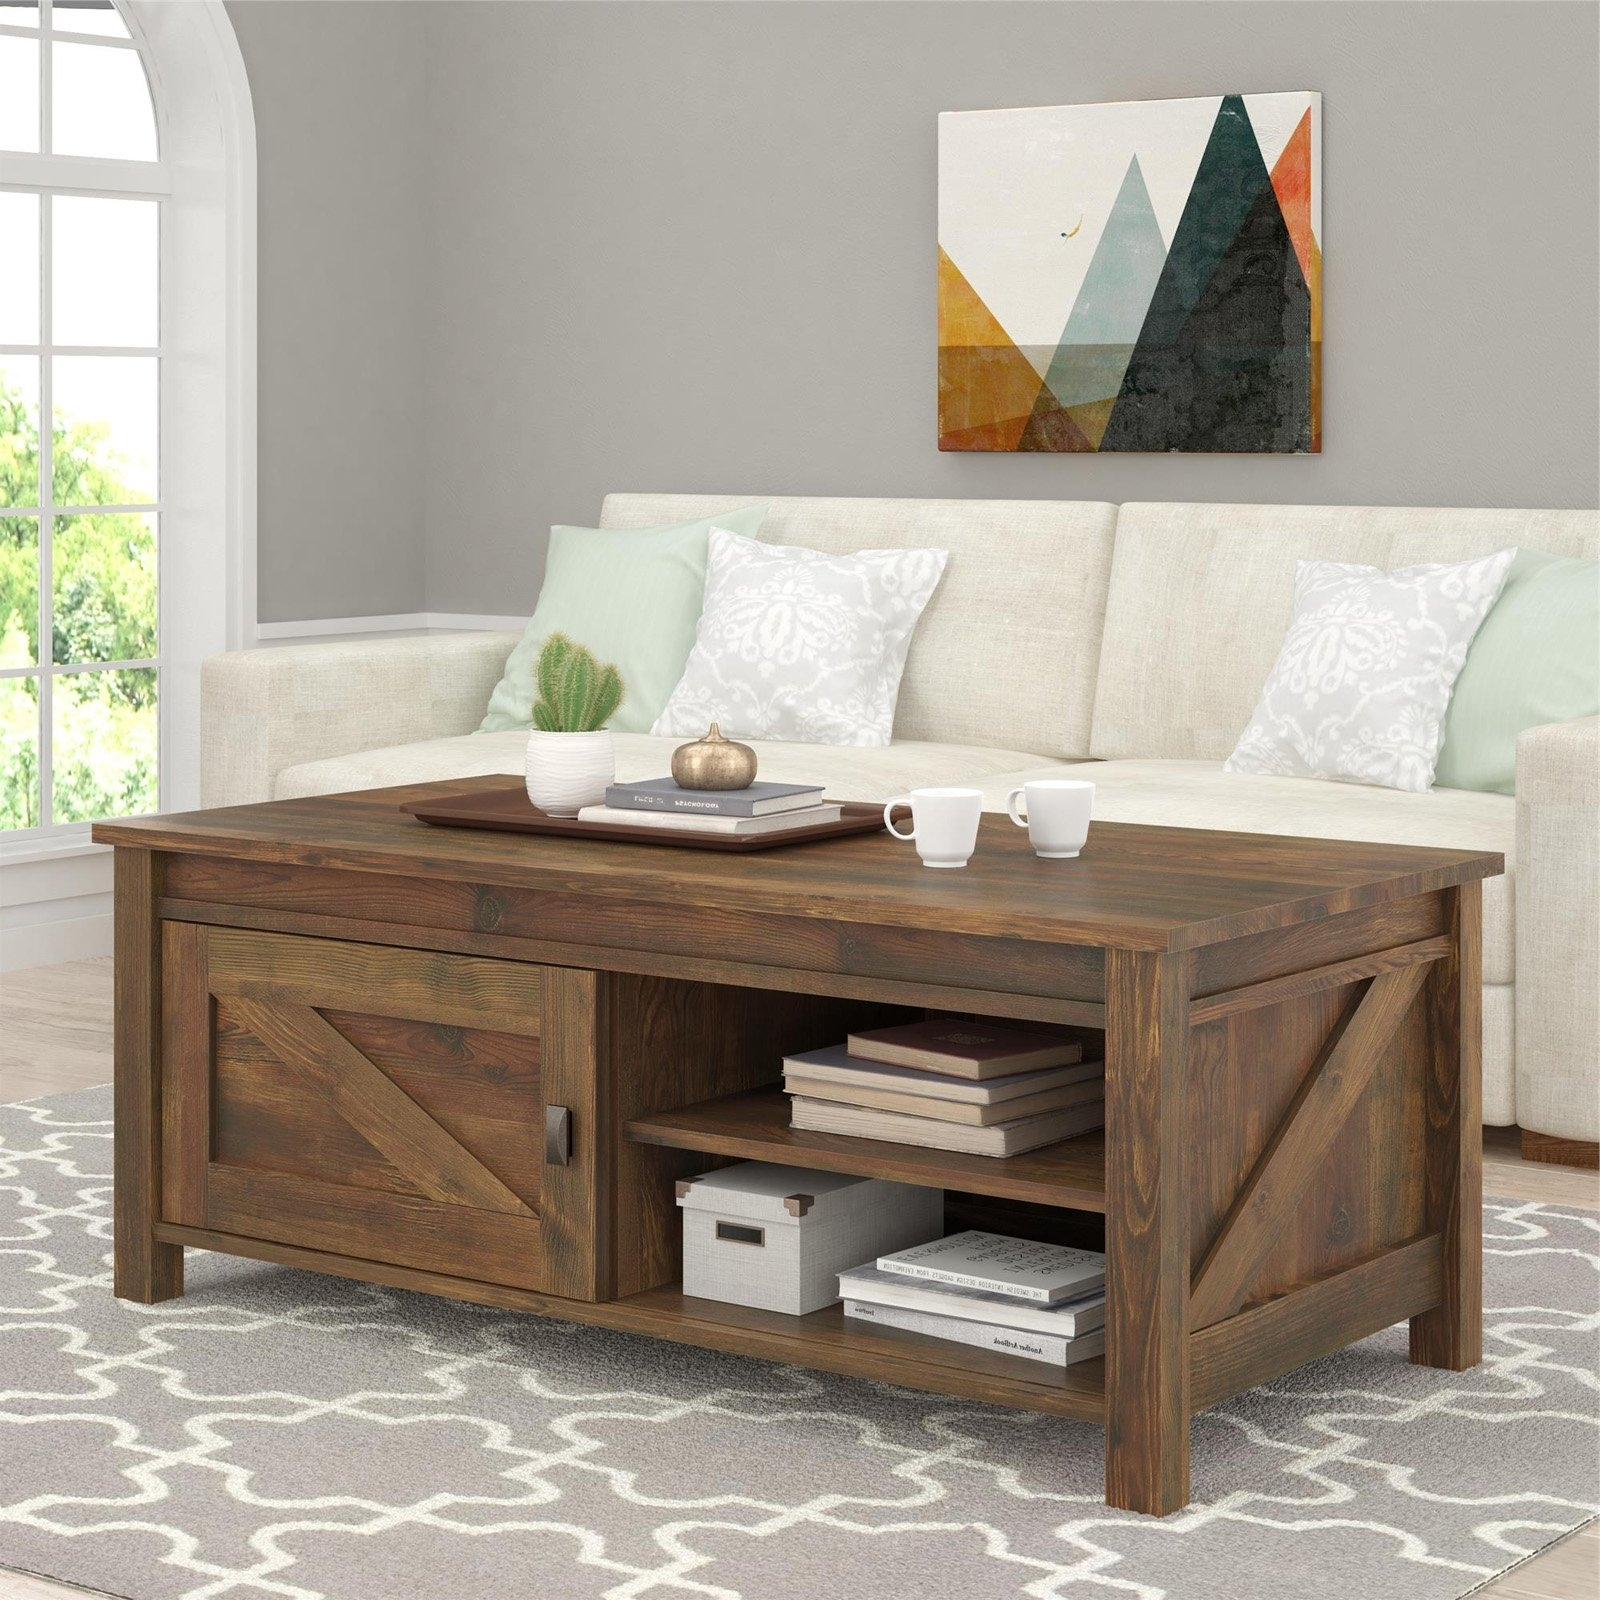 Altra Farmington Coffee Table – Century Barn Pine – Walmart Intended For Fashionable Element Coffee Tables (View 2 of 20)